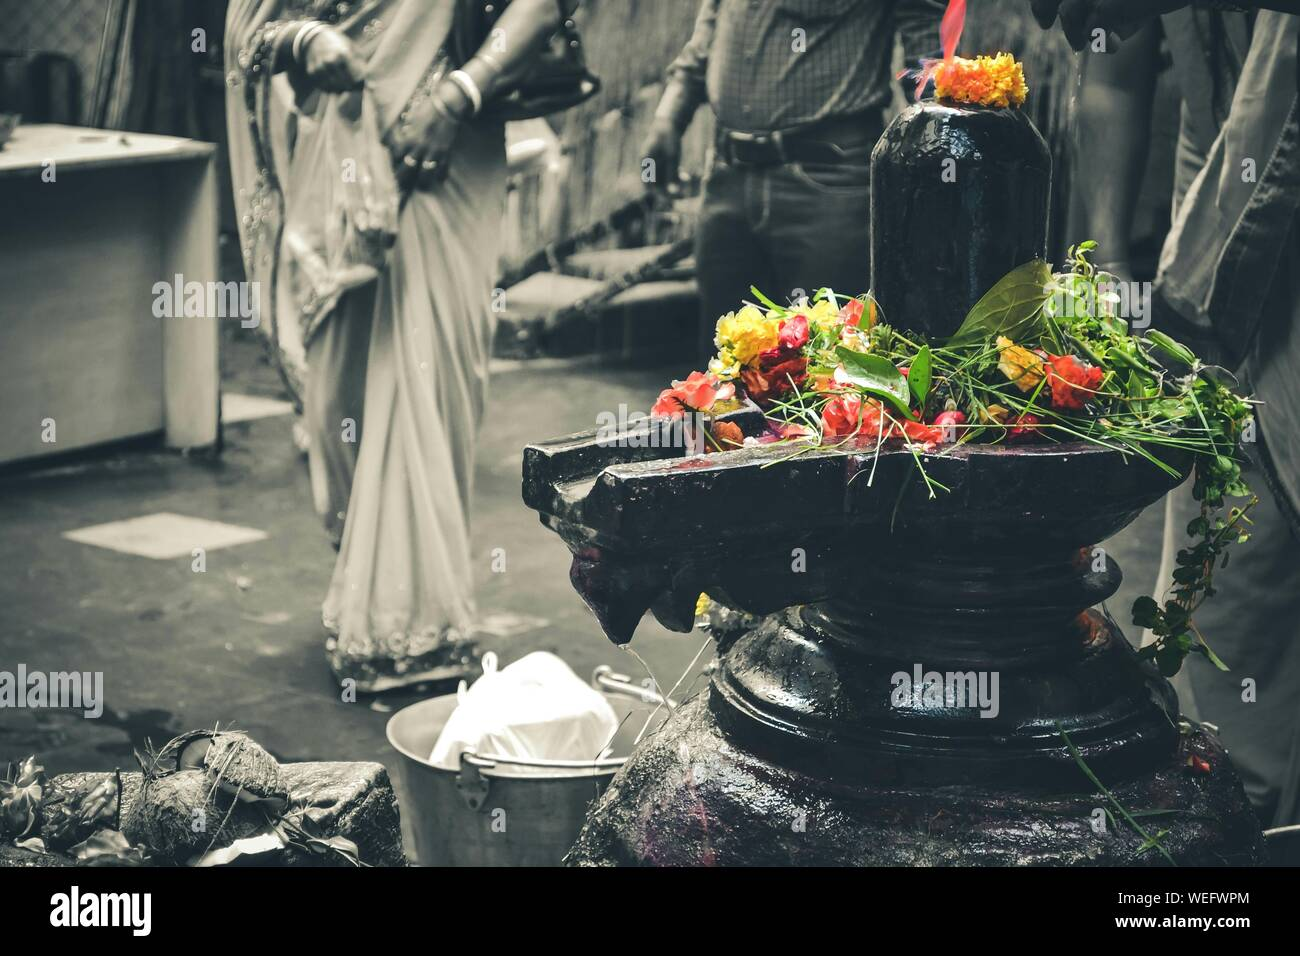 shiva linga high resolution stock photography and images alamy https www alamy com close up of shiva linga with flowers in temple image267110220 html